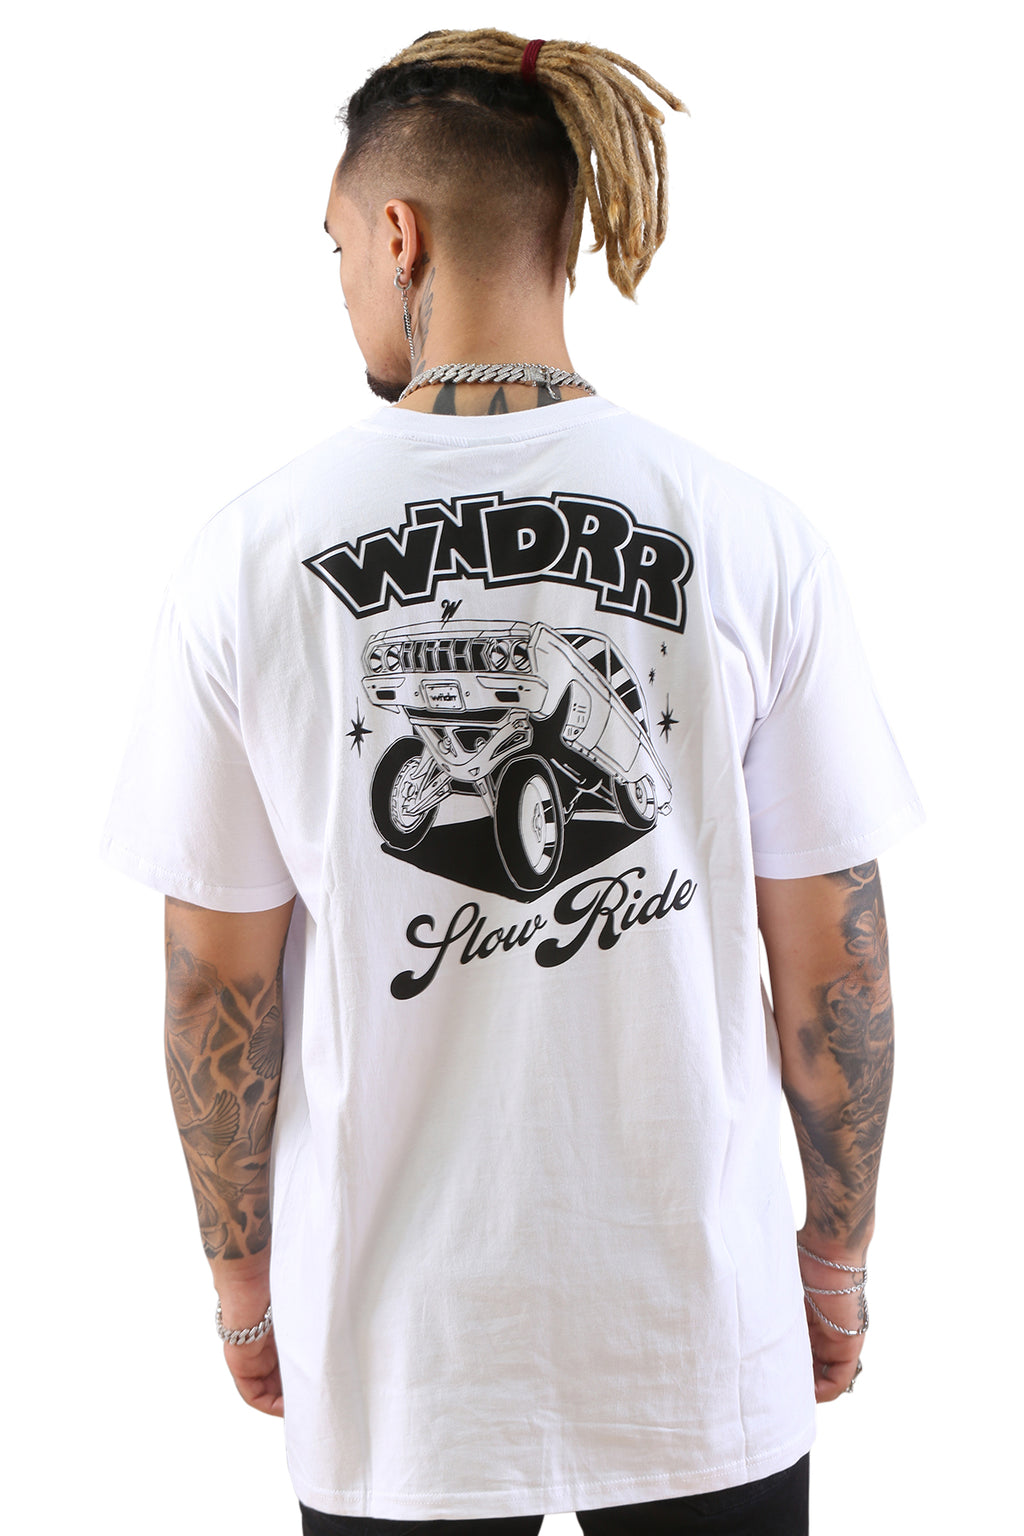 WNDRR Slow Ride Custom Fit Tee White Back